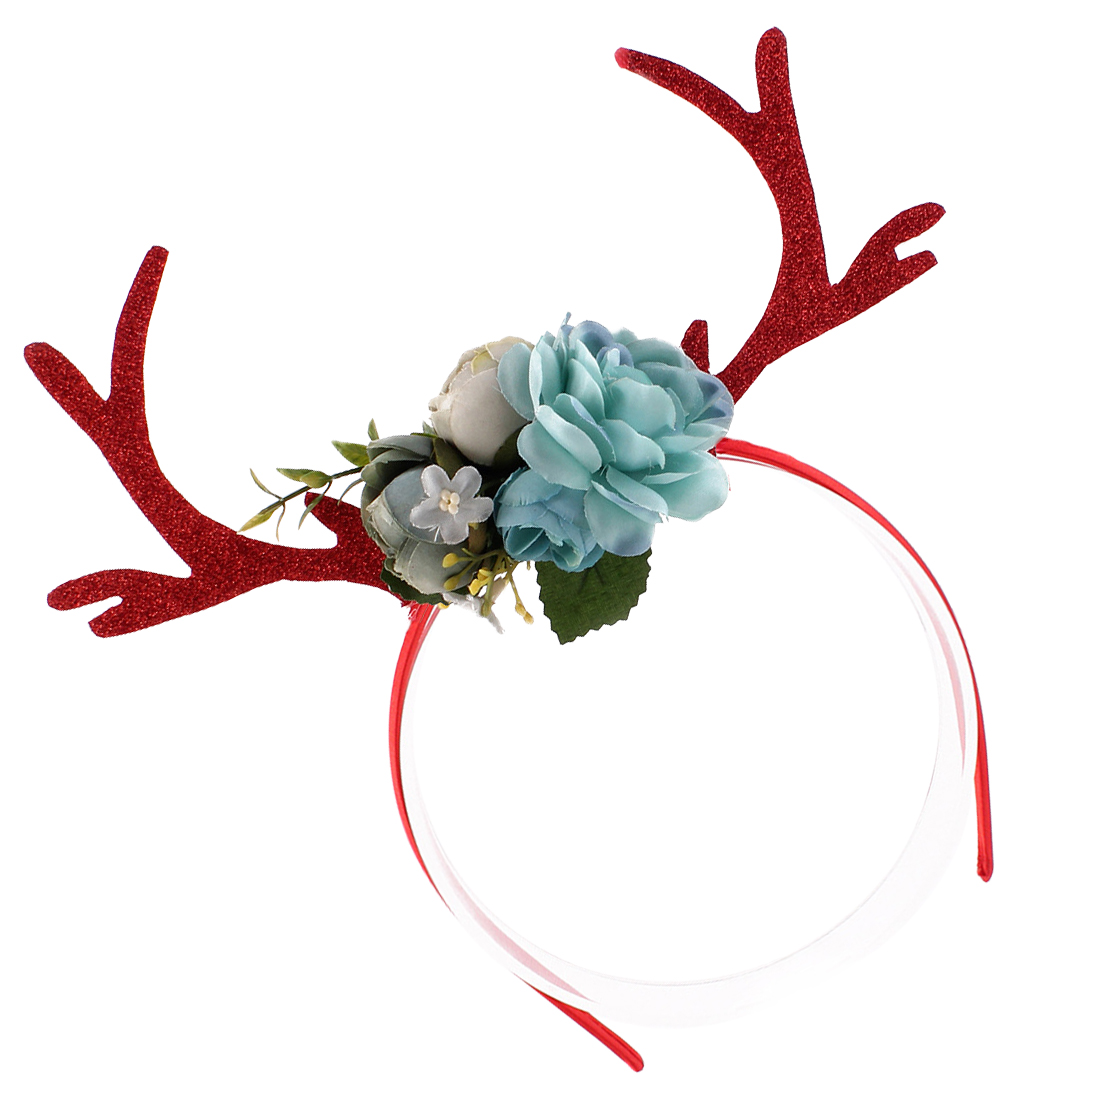 Headband Gift Women Girls Christmas Deer Antlers Costume Ear Party Hair Floral Hairband Hair Accessory for Girls Kids in Women 39 s Hair Accessories from Apparel Accessories